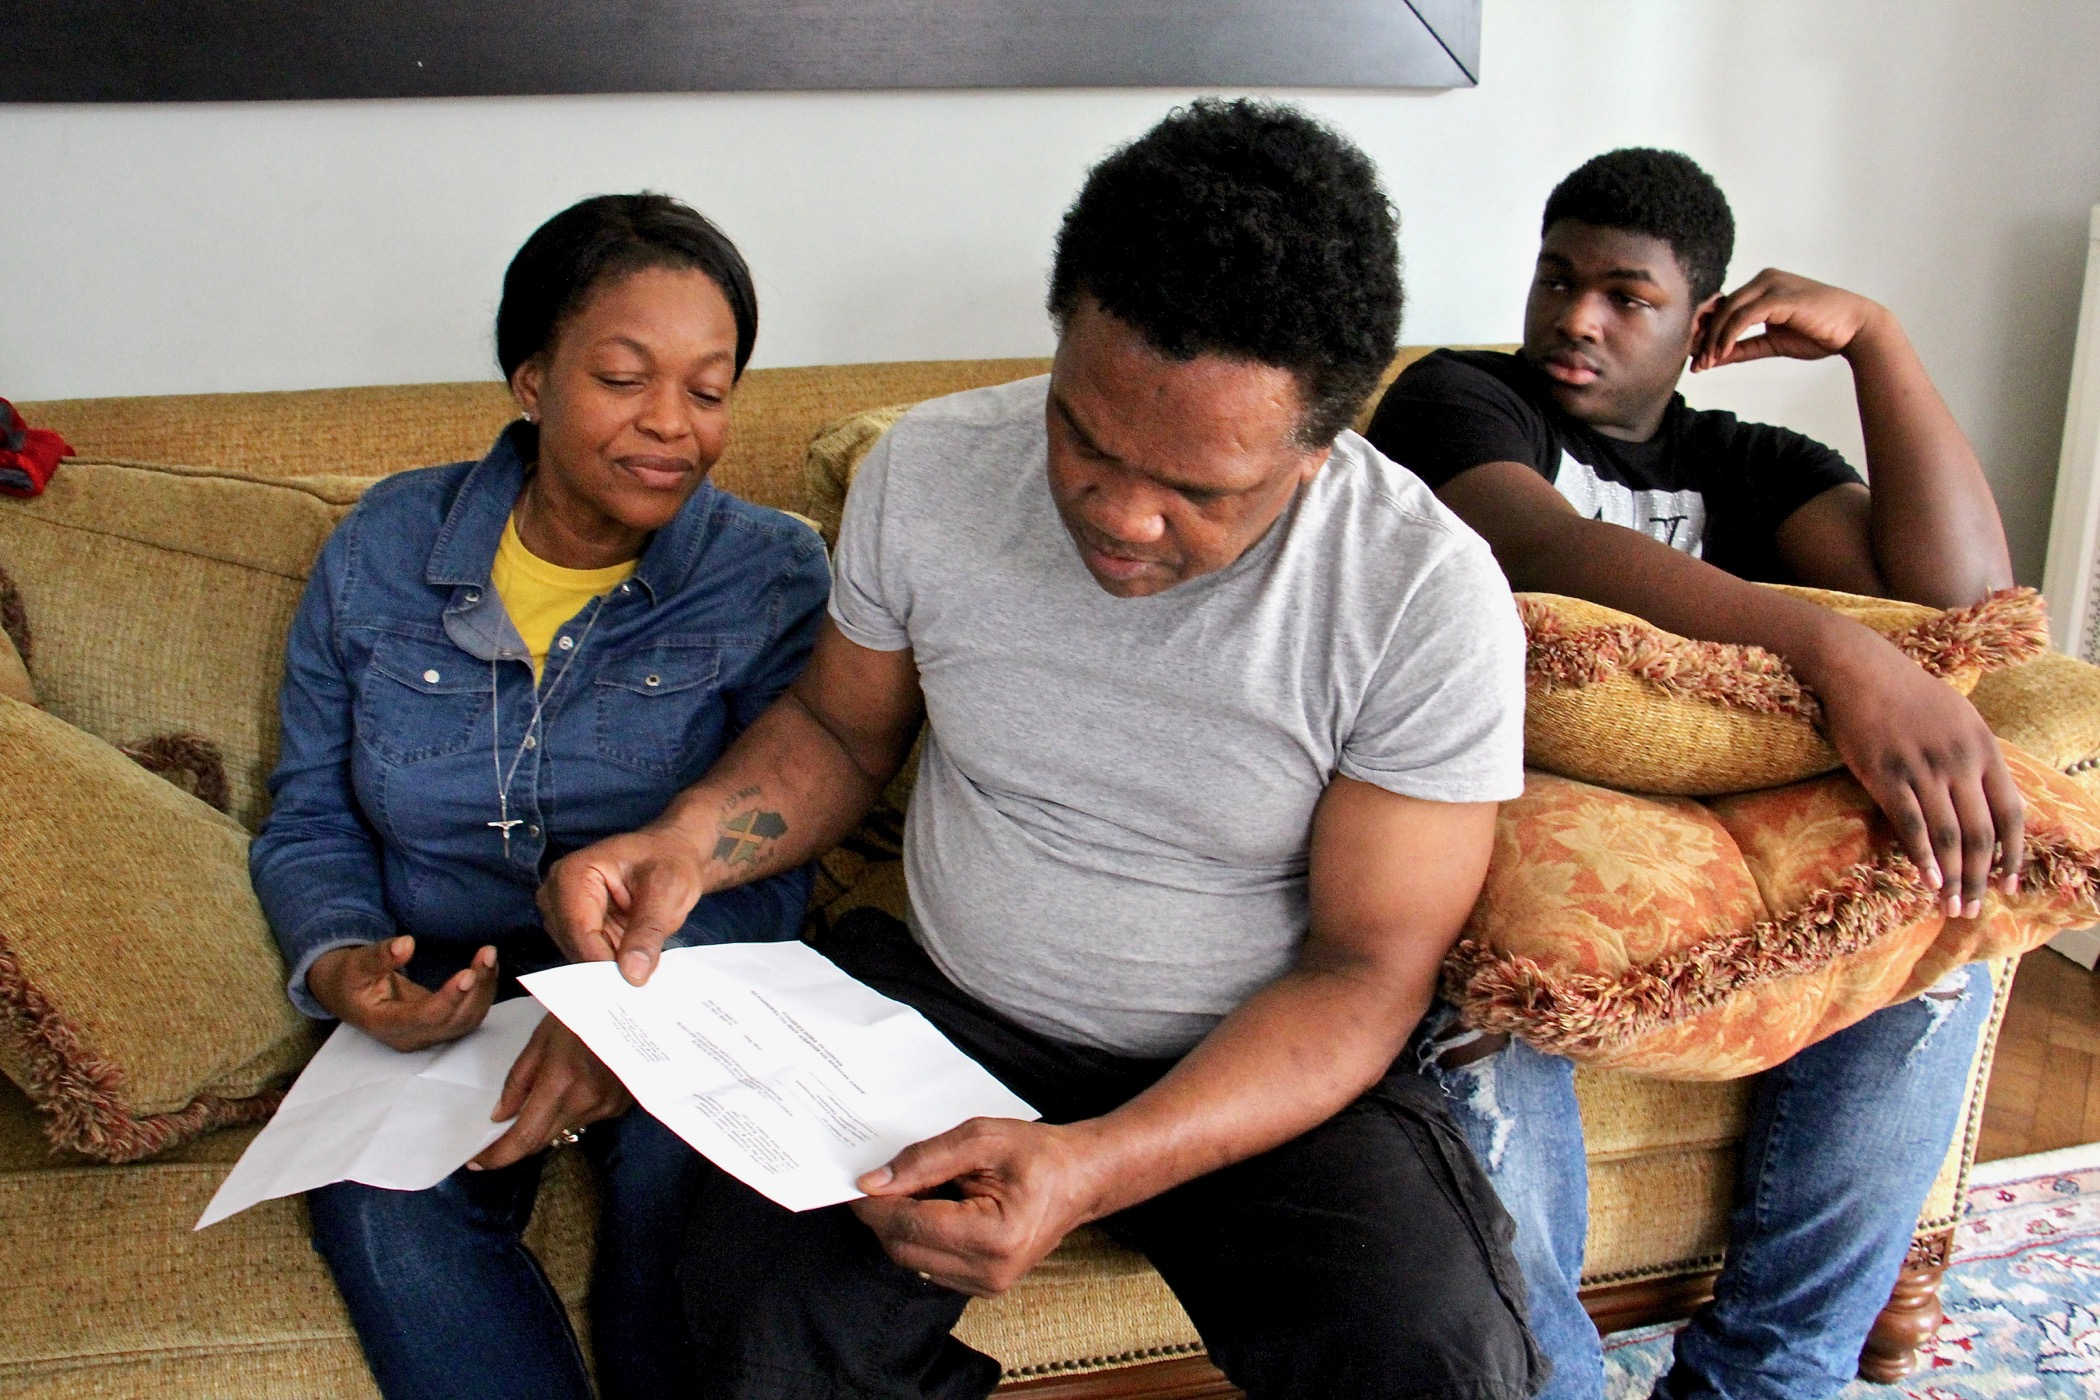 Clive reads a letter while seated next to his wife, Oneita, and son, Timothy, on the couch